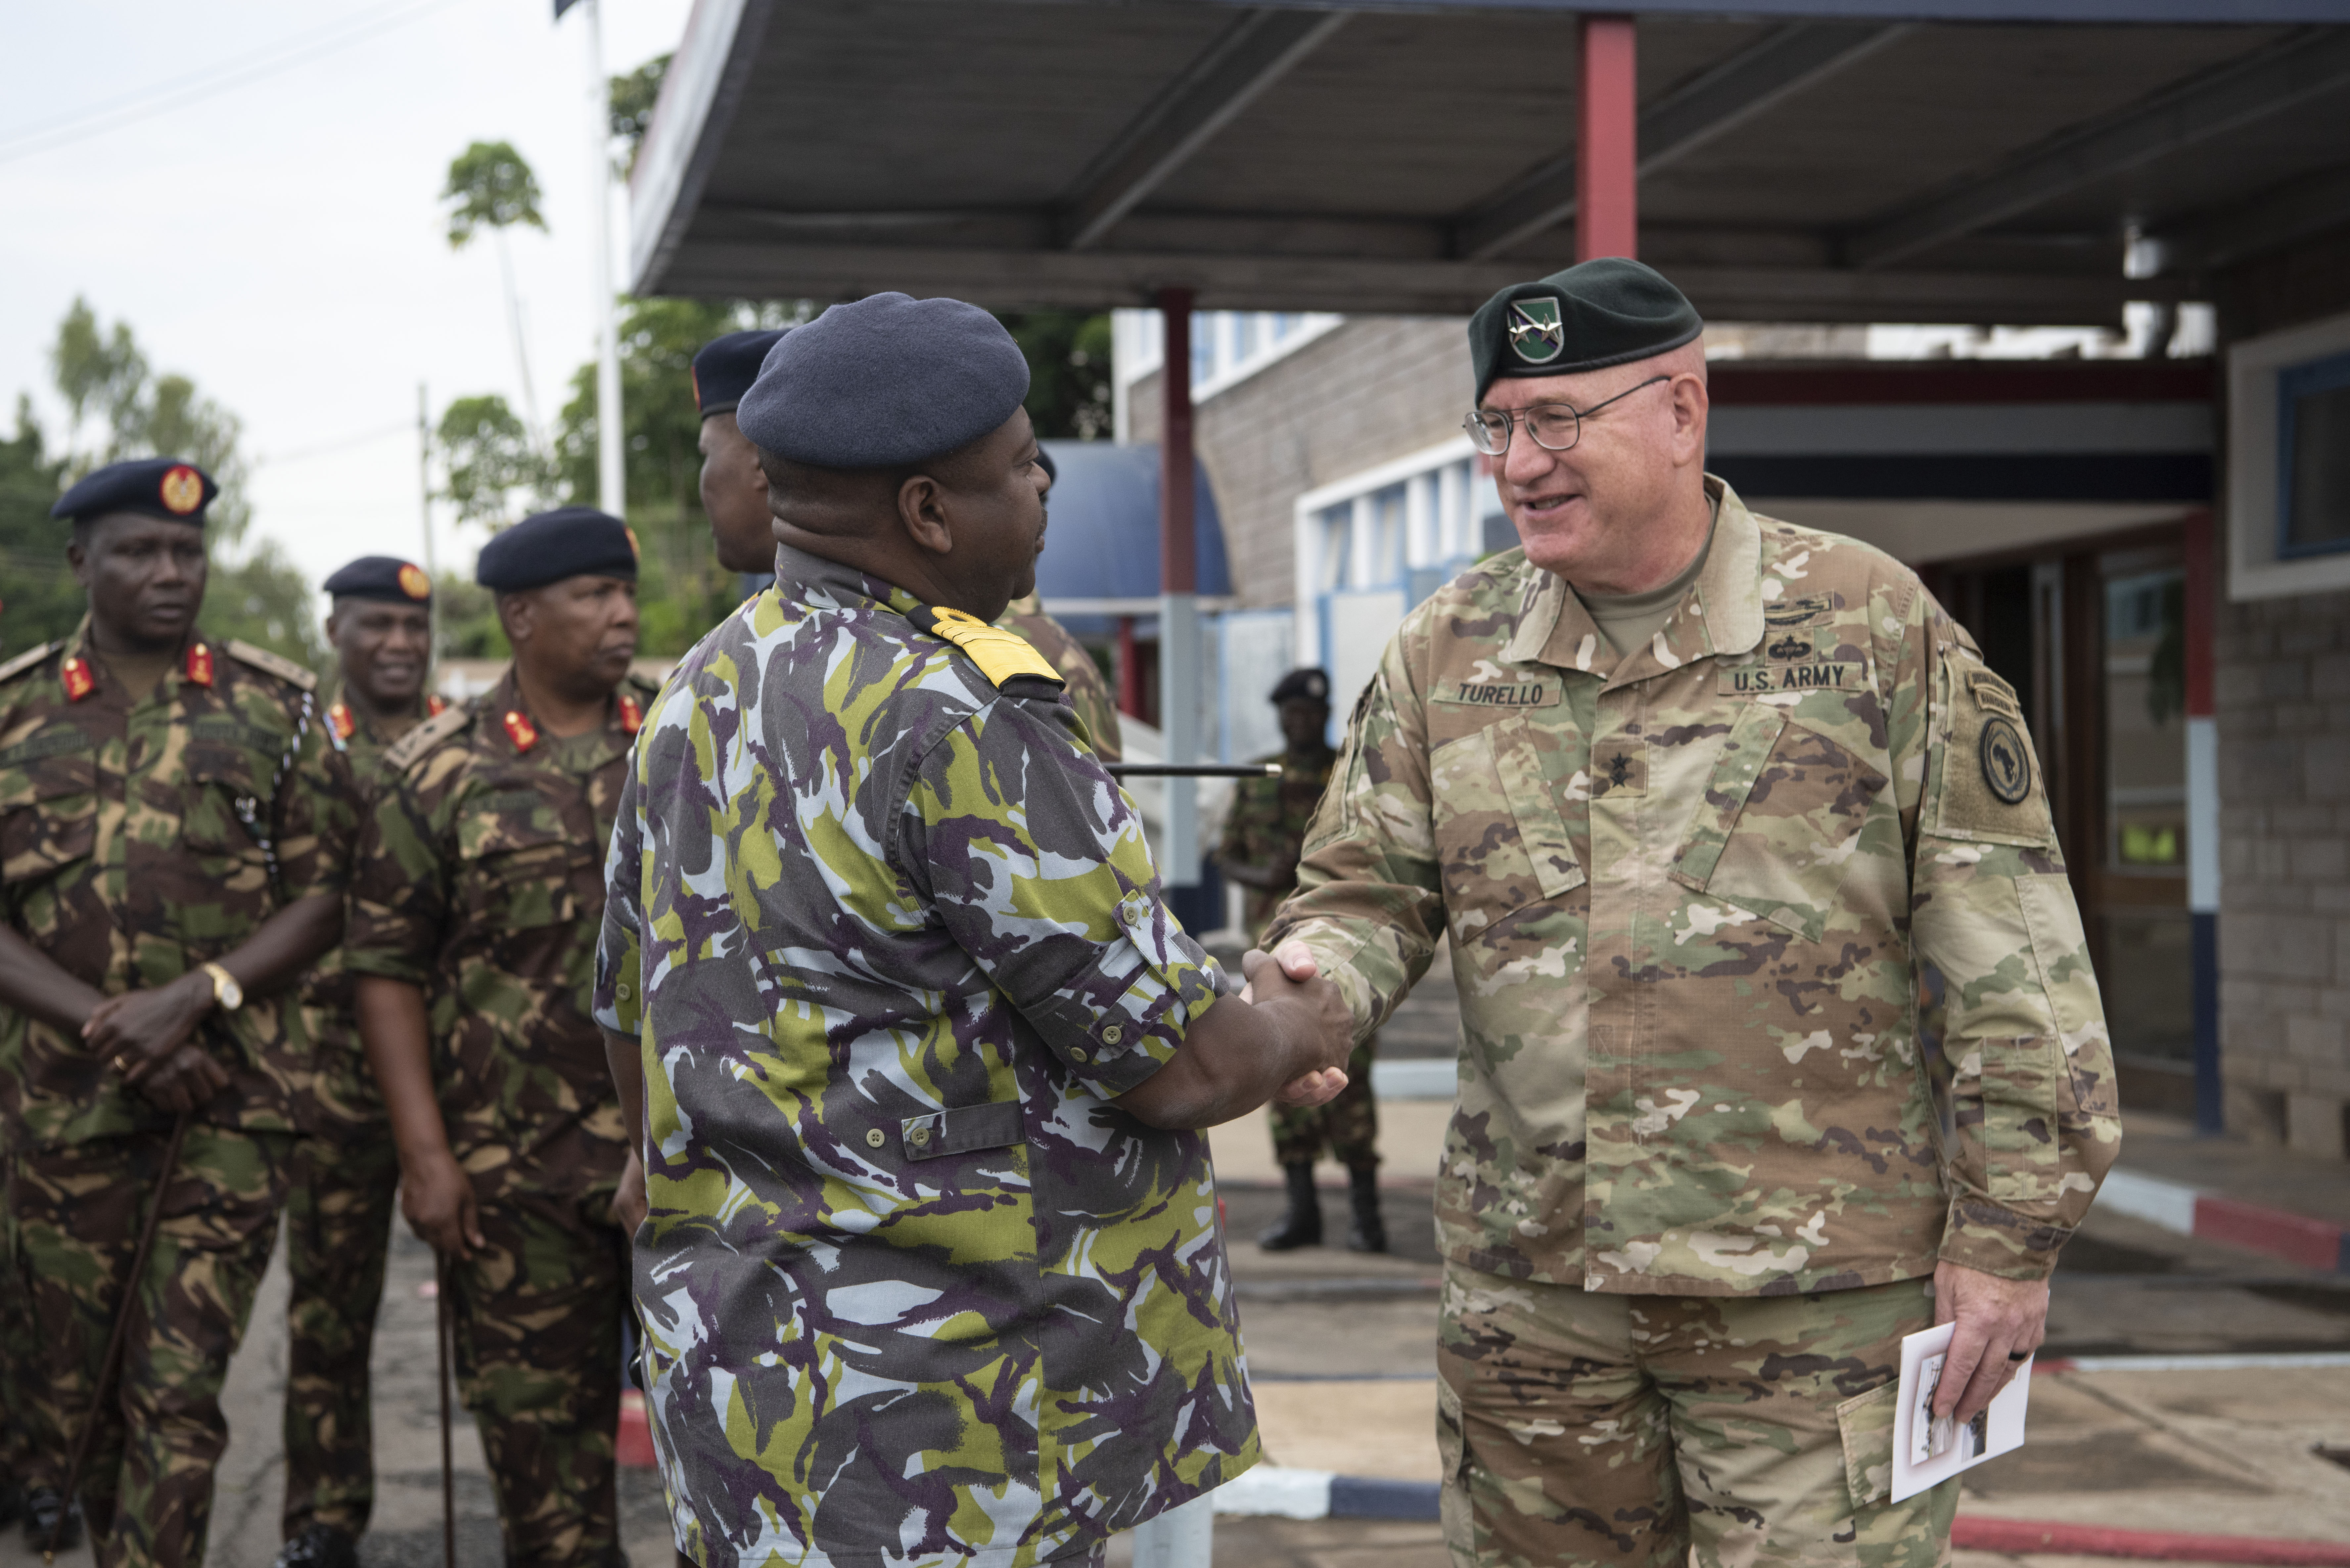 U.S. Army Maj. Gen. Michael D. Turello, right, commanding general of Combined Joint Task Force-Horn of Africa, greets Gen. Samson Mwathethe, chief of Kenyan Defense Forces (KDF), during a Helicopter Handover Ceremony at Embakasi Barracks, Kenya, Jan. 23, 2020. During the ceremony, six MD-530F Cayuse Warrior helicopters were delivered to the KDF in a symbolic handover. Six more MD-530F helicopters will be delivered to the KDF in the near future. (U.S. Air Force photo by Tech. Sgt. Ashley Nicole Taylor)